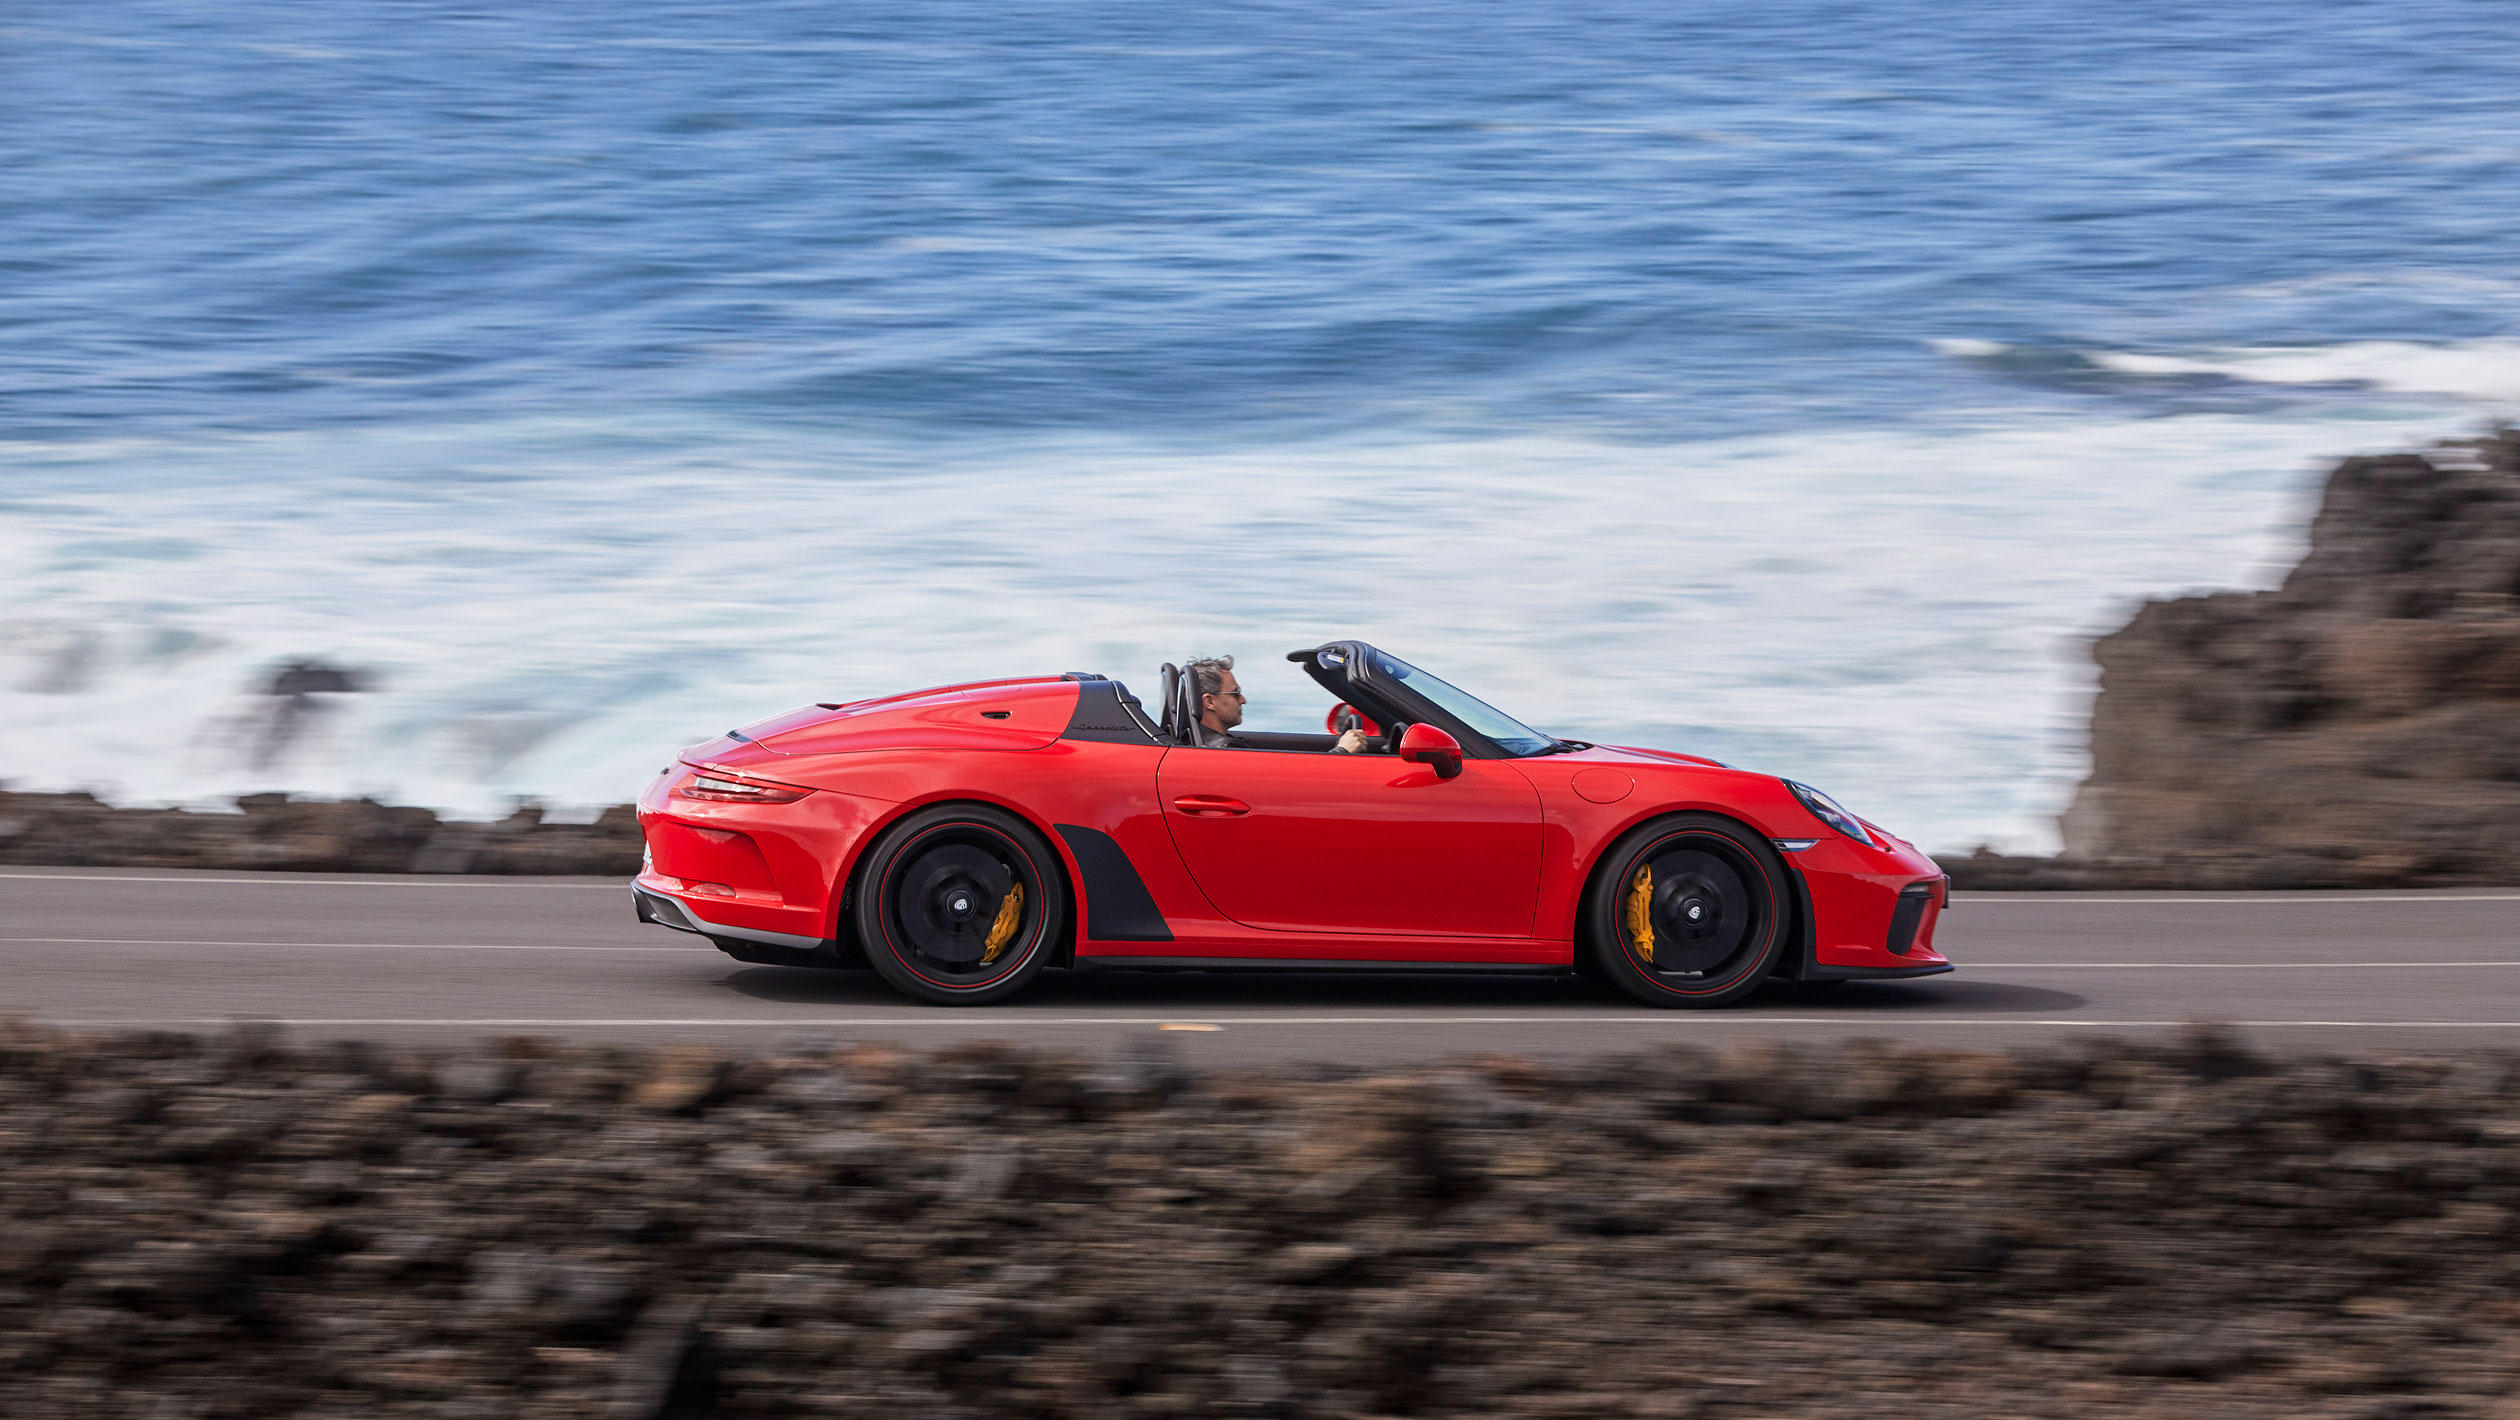 Pure Porsche: open-top two-seater for unfiltered driving experiences